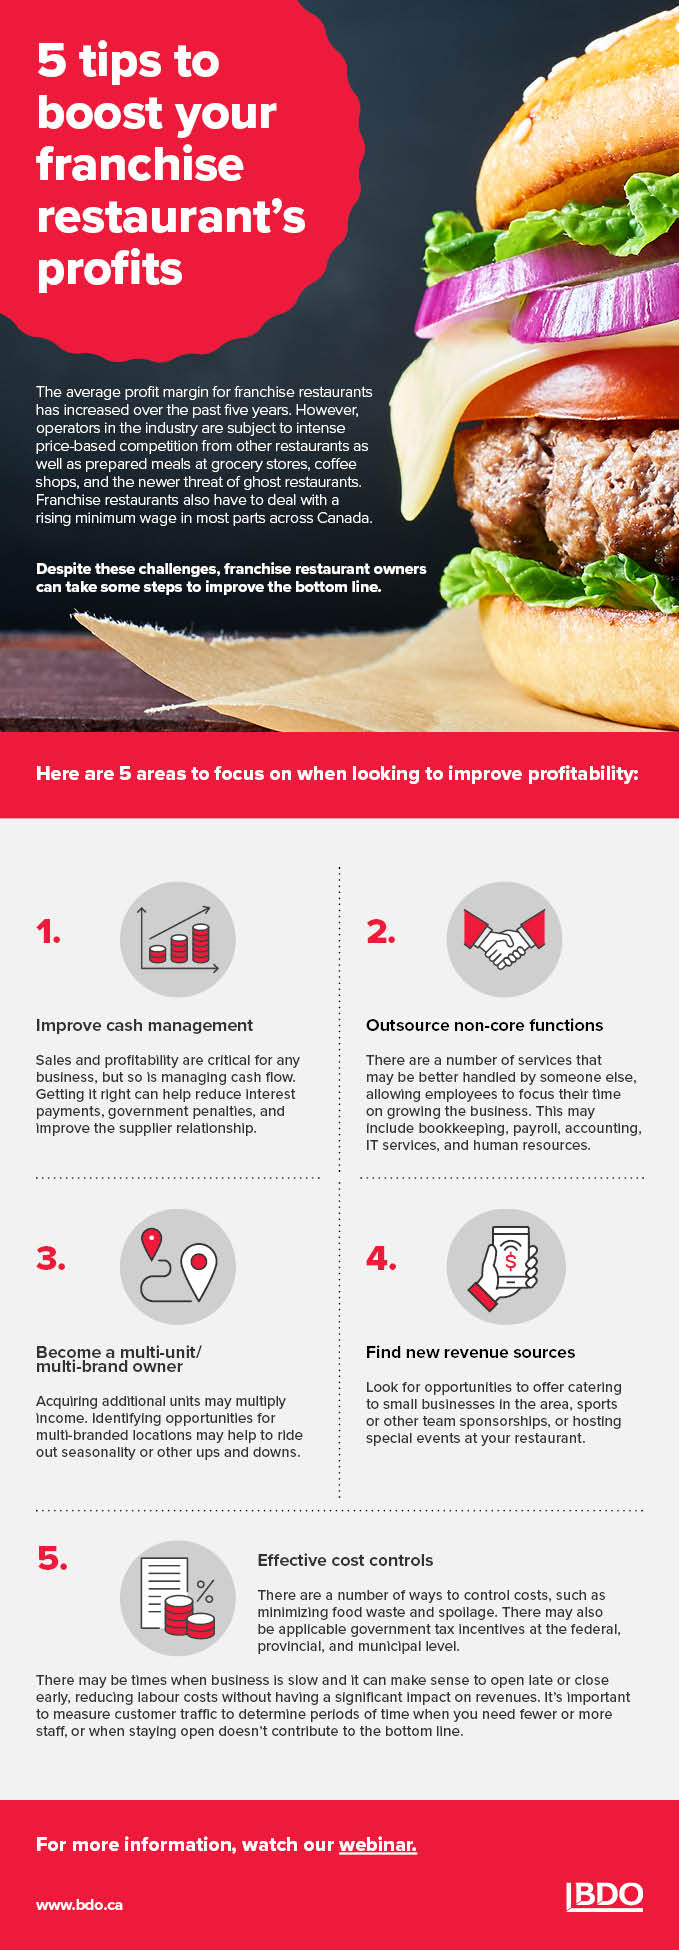 Franchising-Restaurants_Top-5-Tips_Infographic_25Apr19.jpg